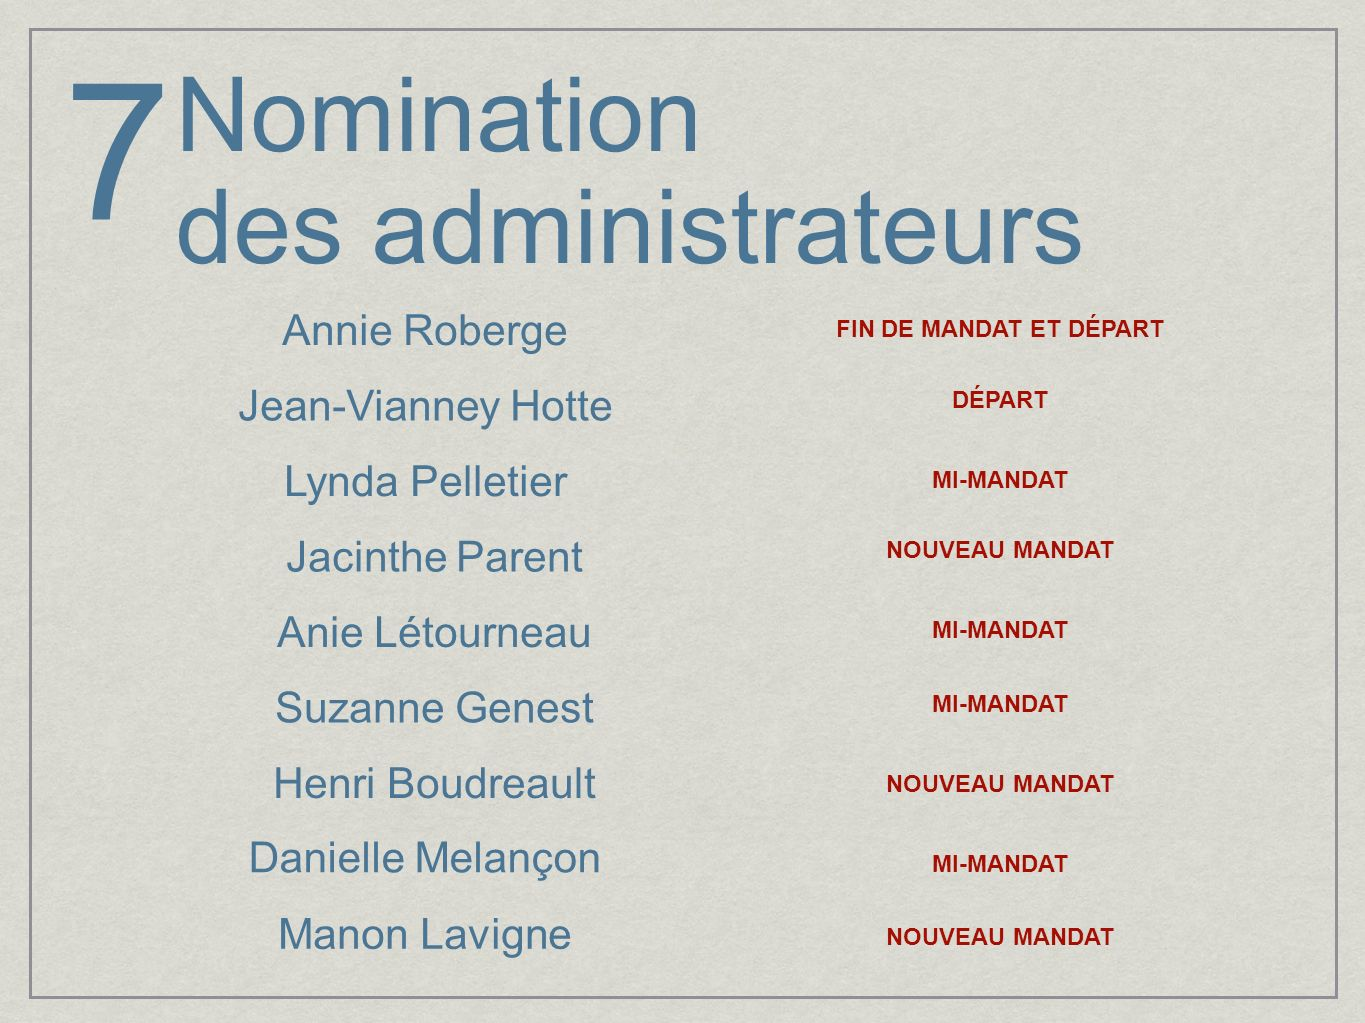 Nomination des administrateurs